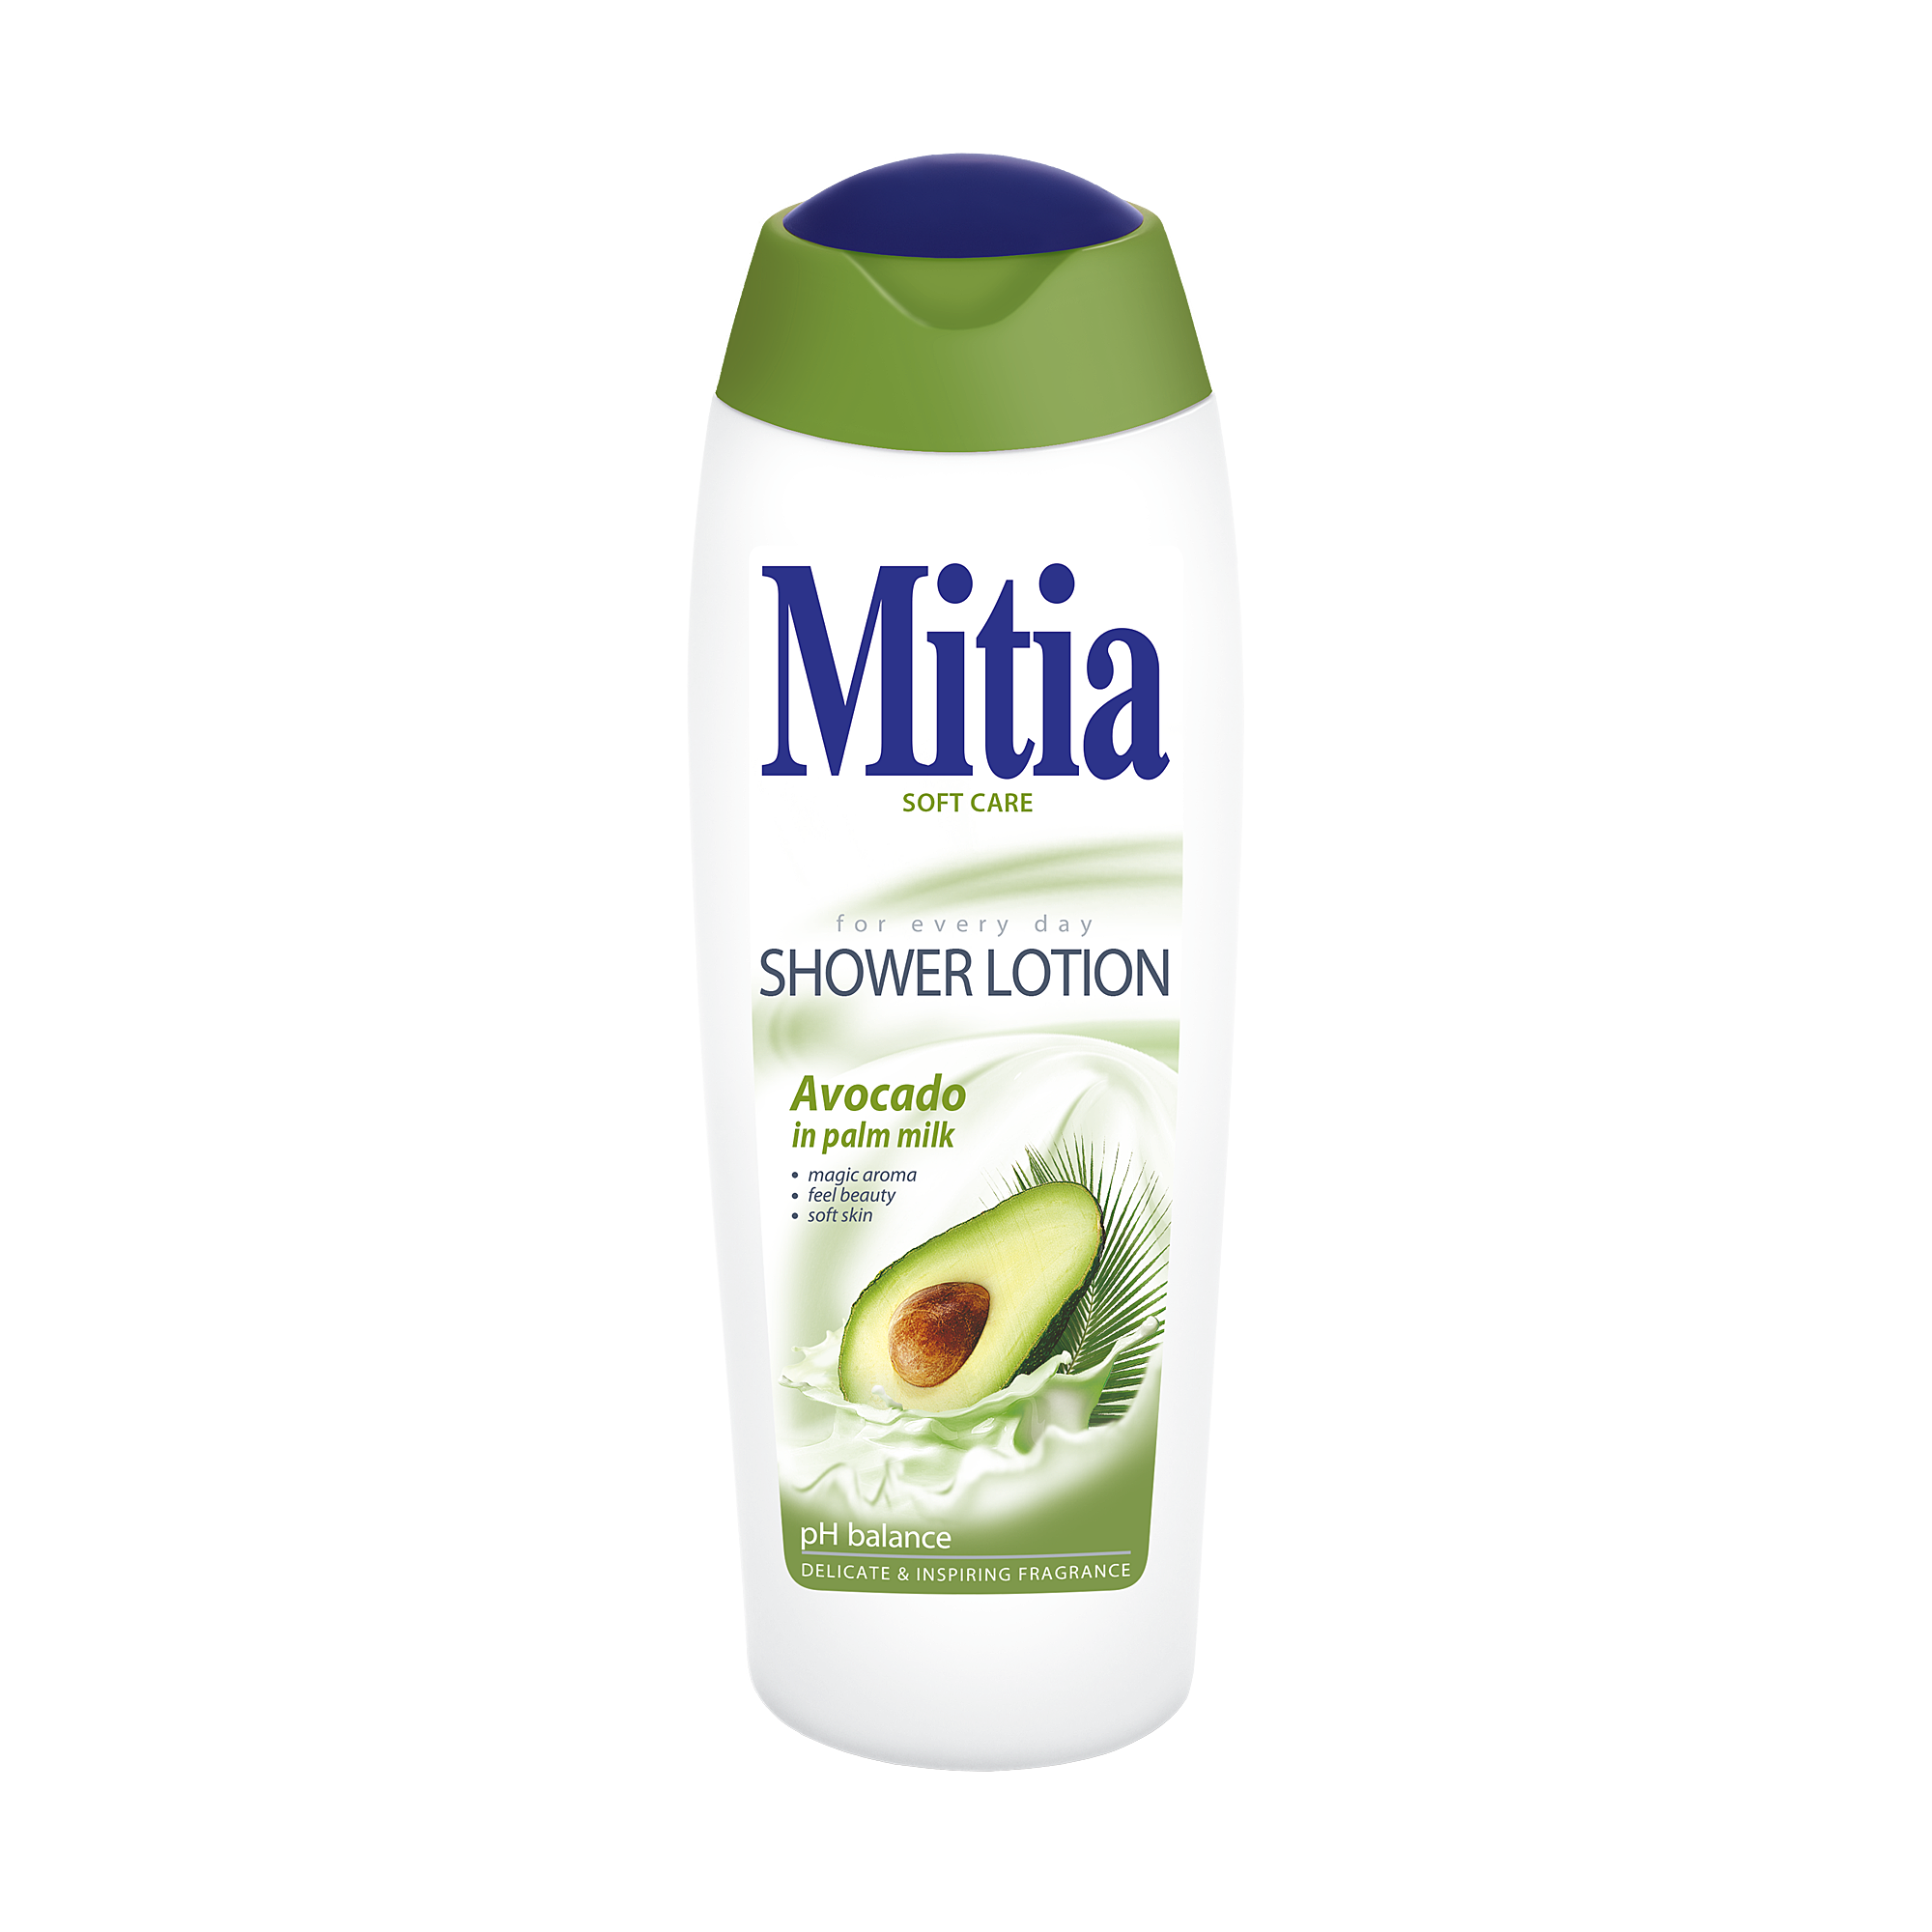 Mitia Avokado in palm milk shower milk